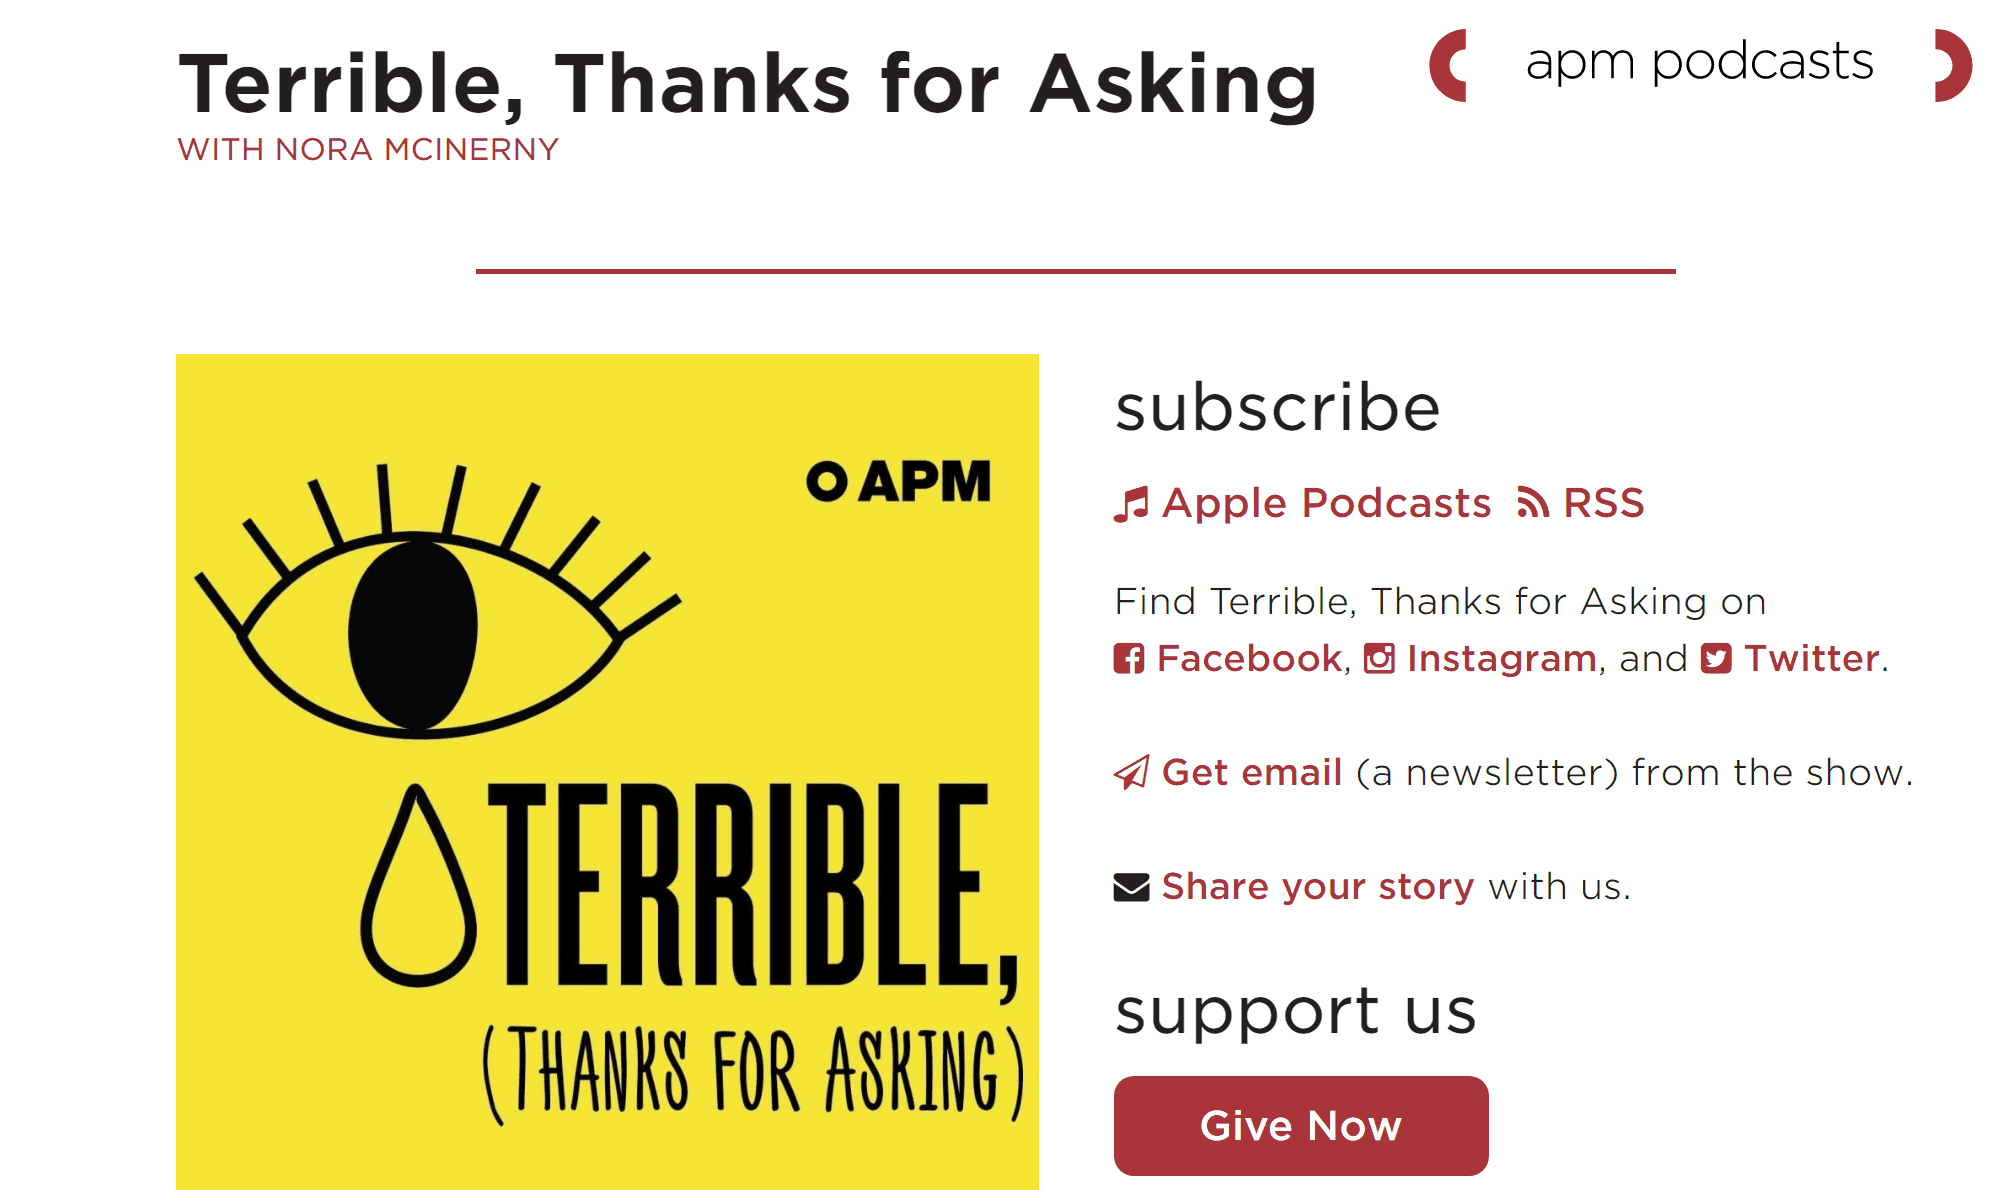 Terrible, Thanks for Asking